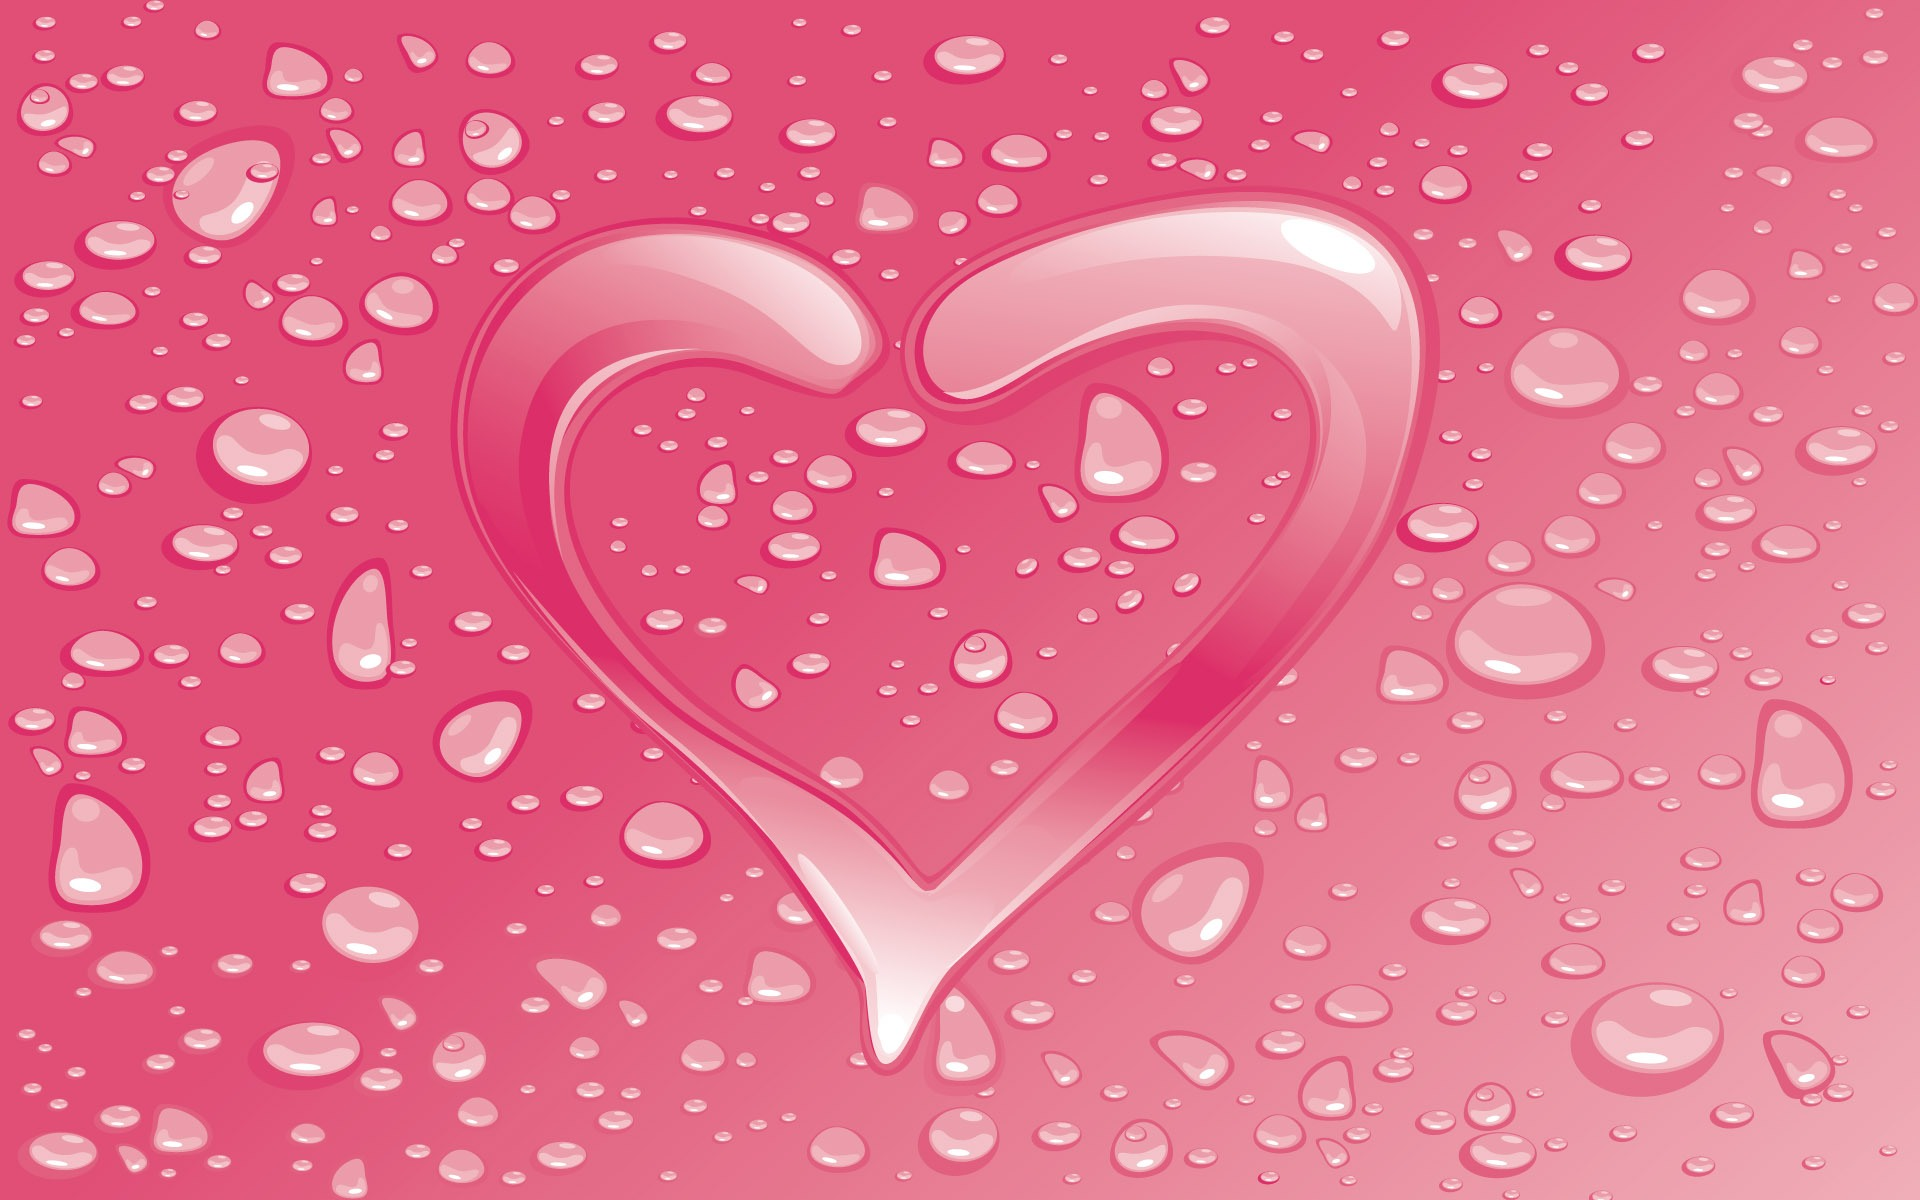 valentines day wallpaper heart water droplets free hd desktop